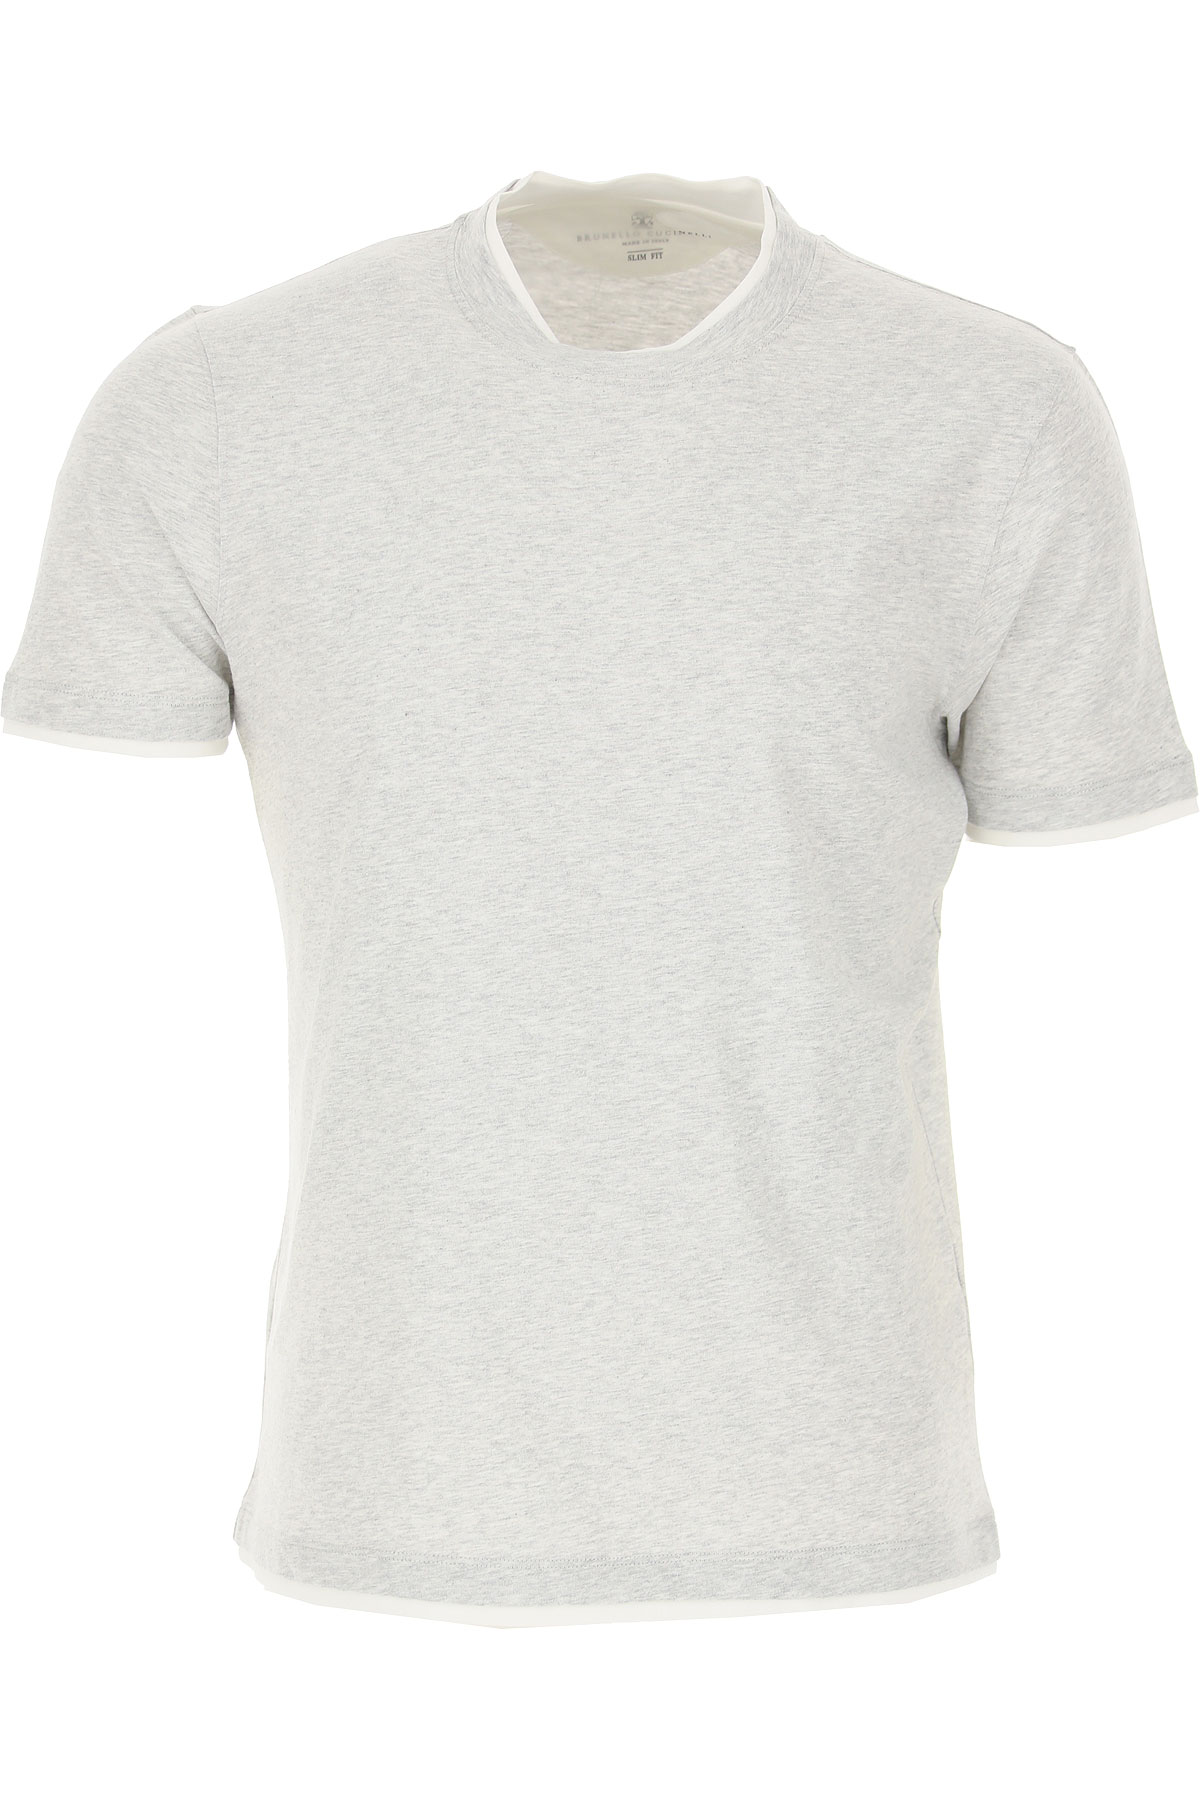 Brunello Cucinelli T-Shirt for Men On Sale in Outlet, Grey, Cotton, 2019, M S